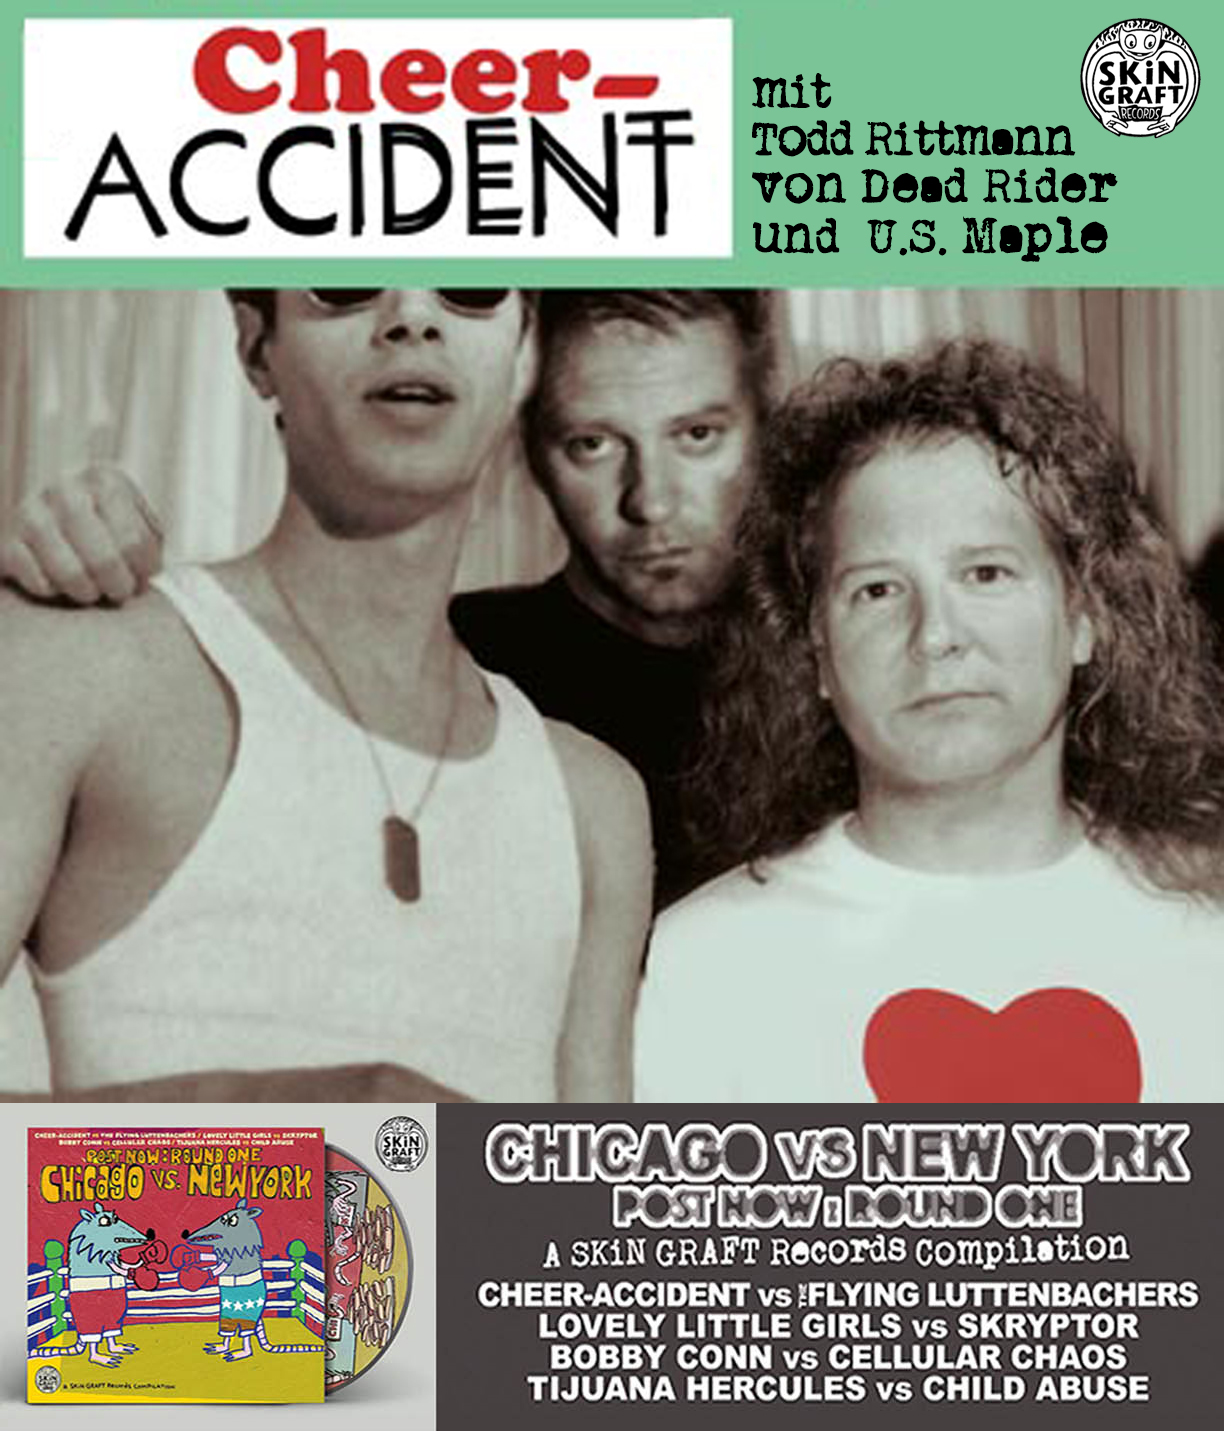 Cheer-Accident ad